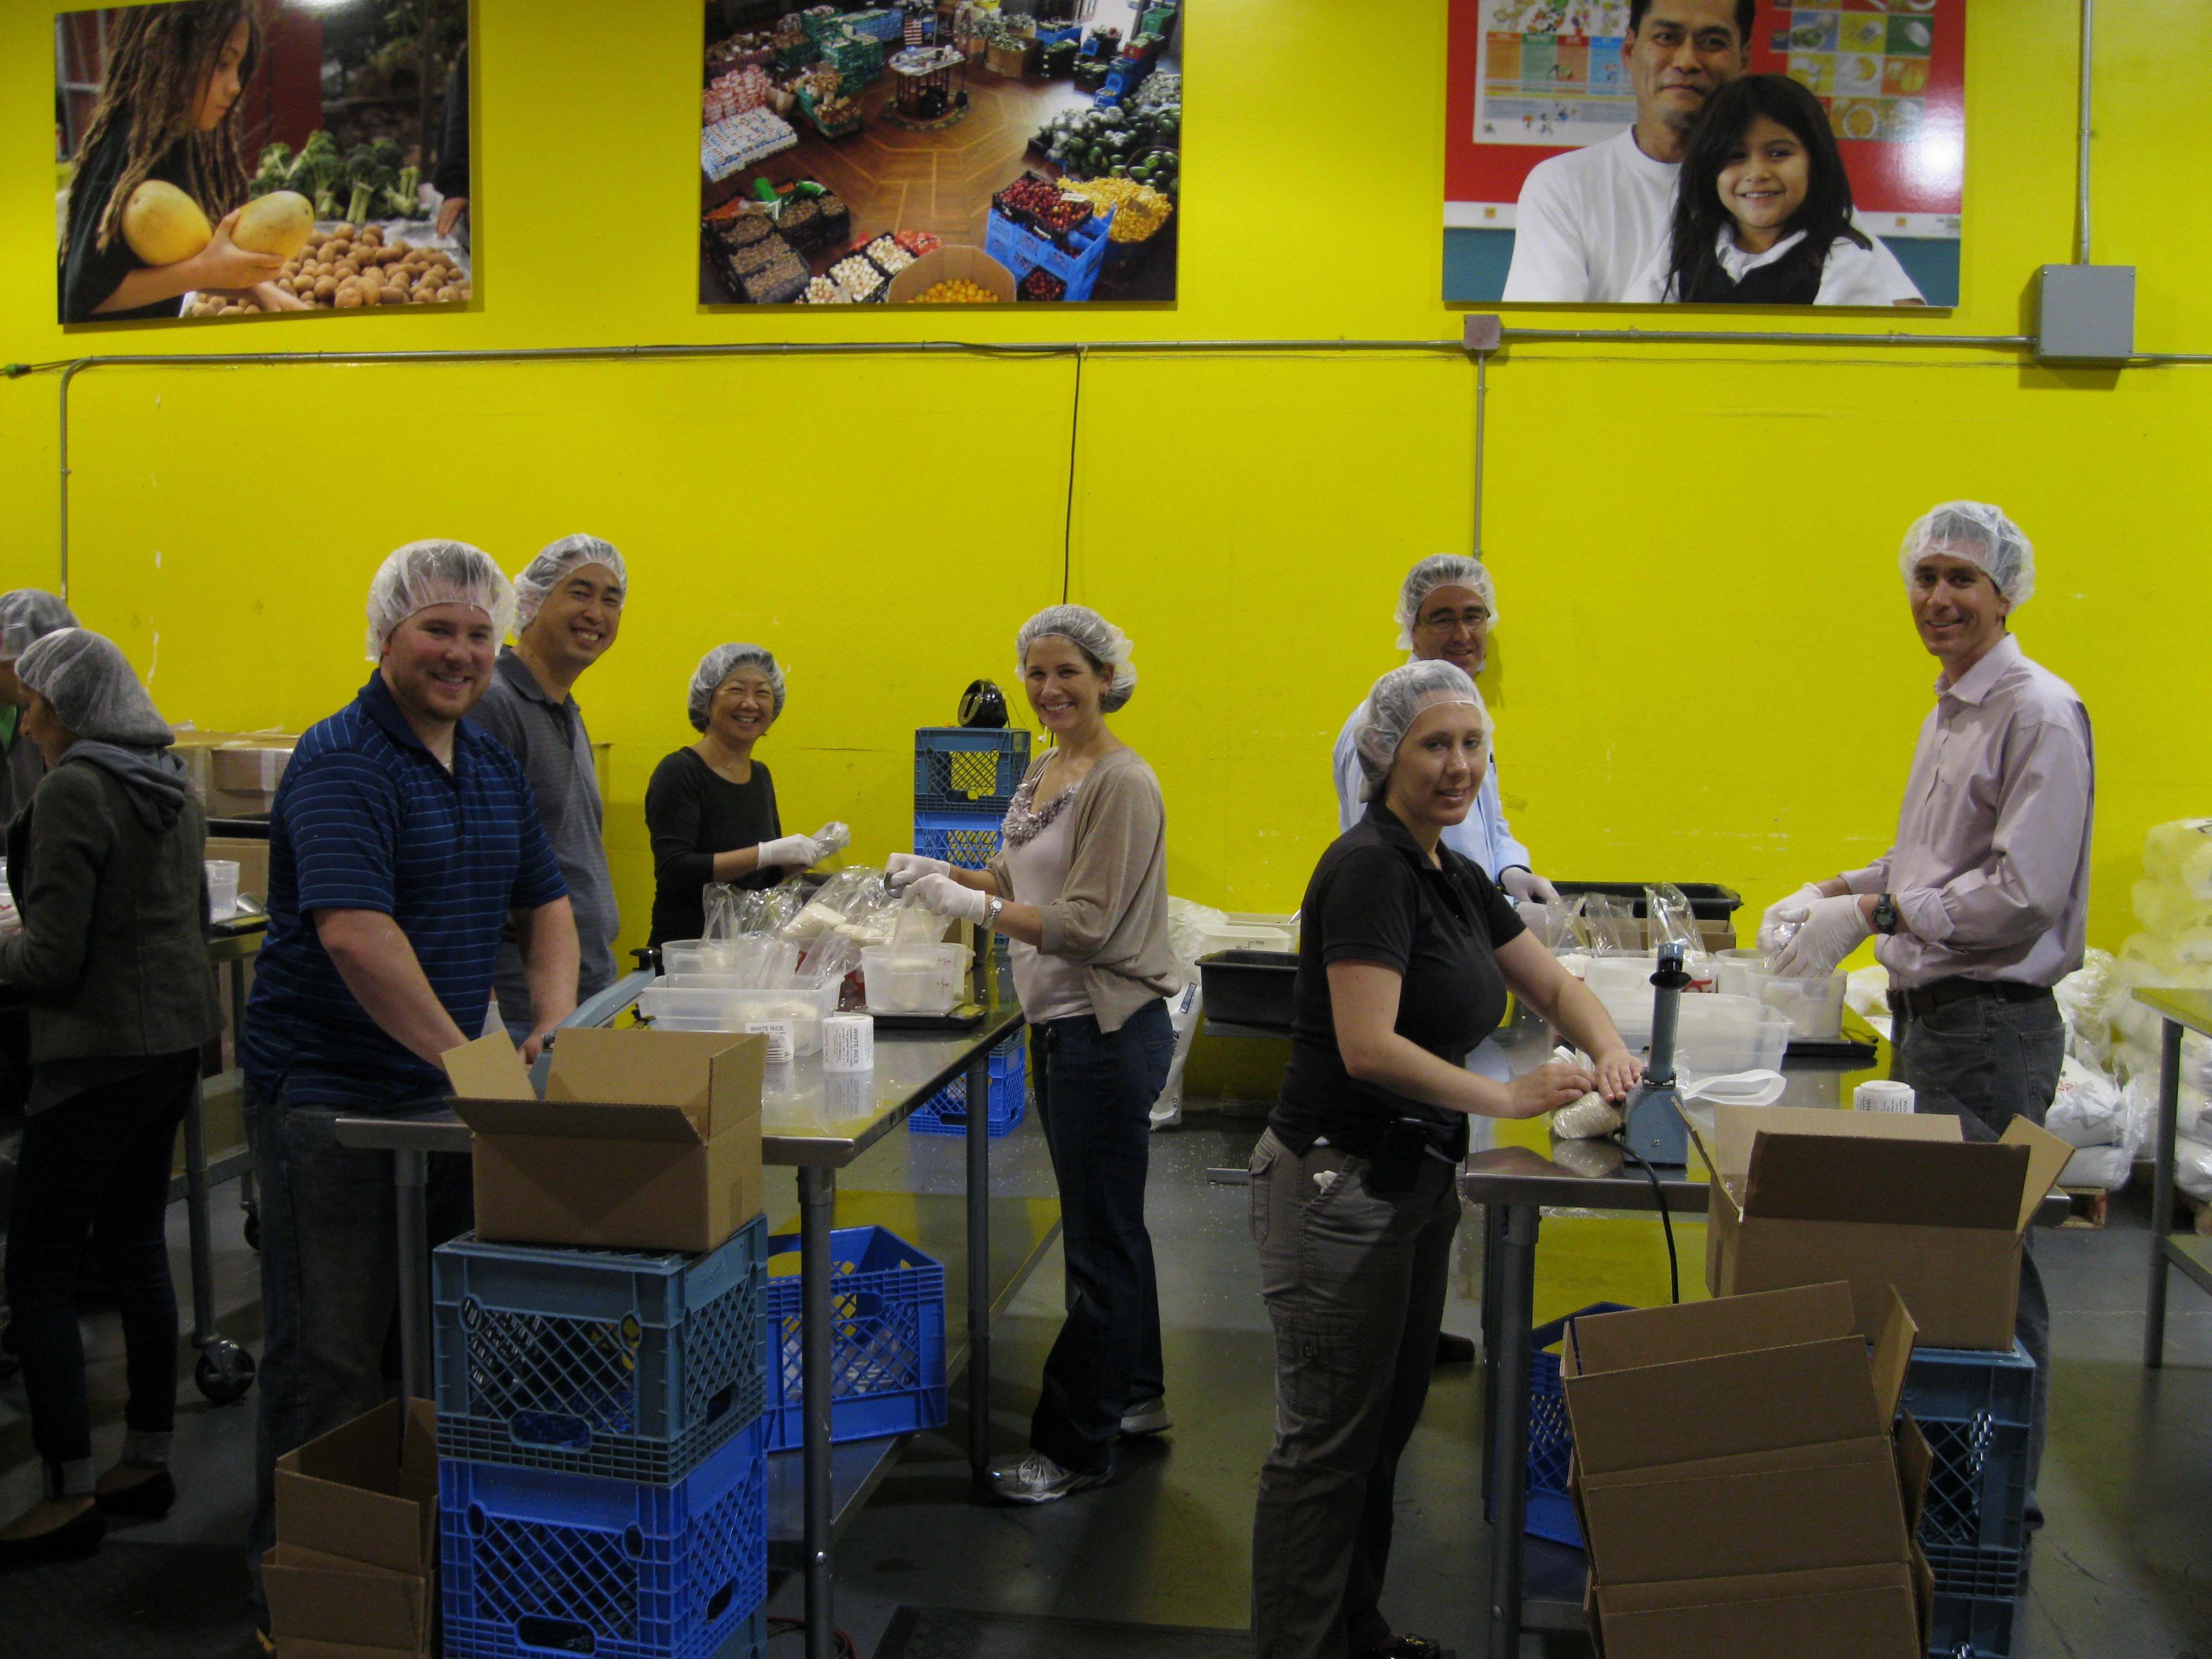 On August 24, several members of the University of California San Francisco (UCSF) Neurosciences Building Project Team participated in a community service event benefitting the San Francisco Food Bank.